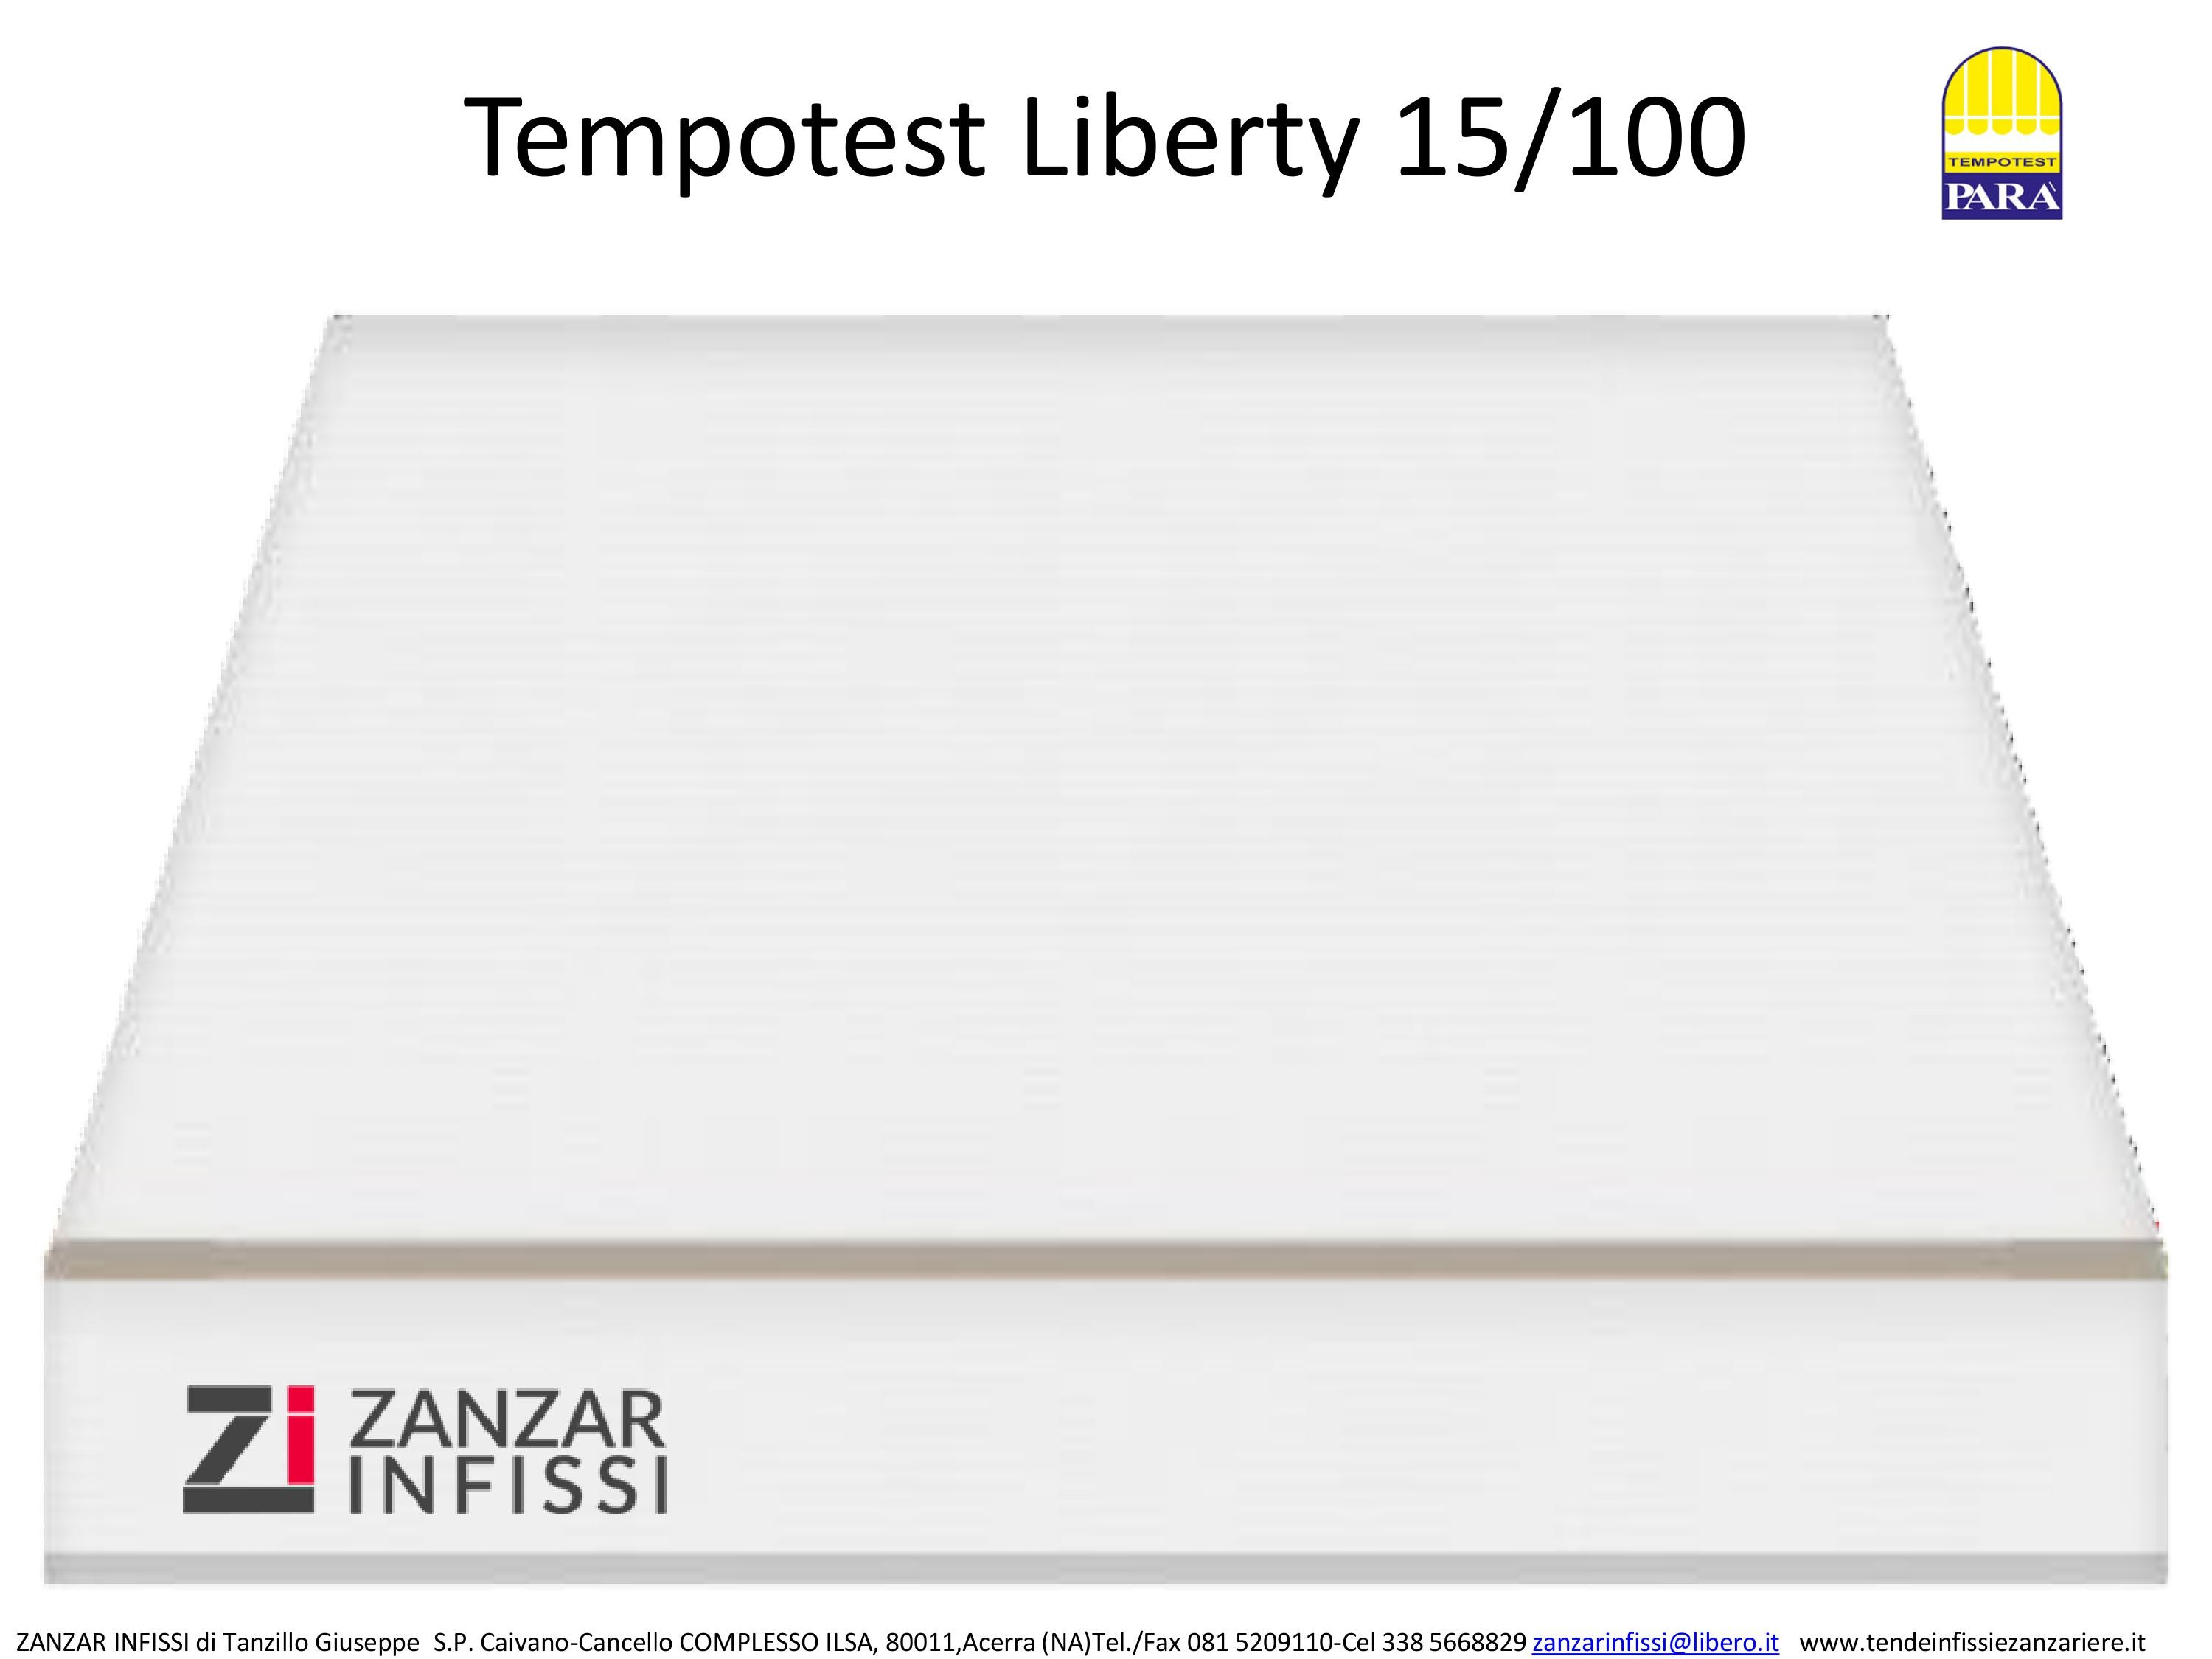 Tempotest Liberty 15/100